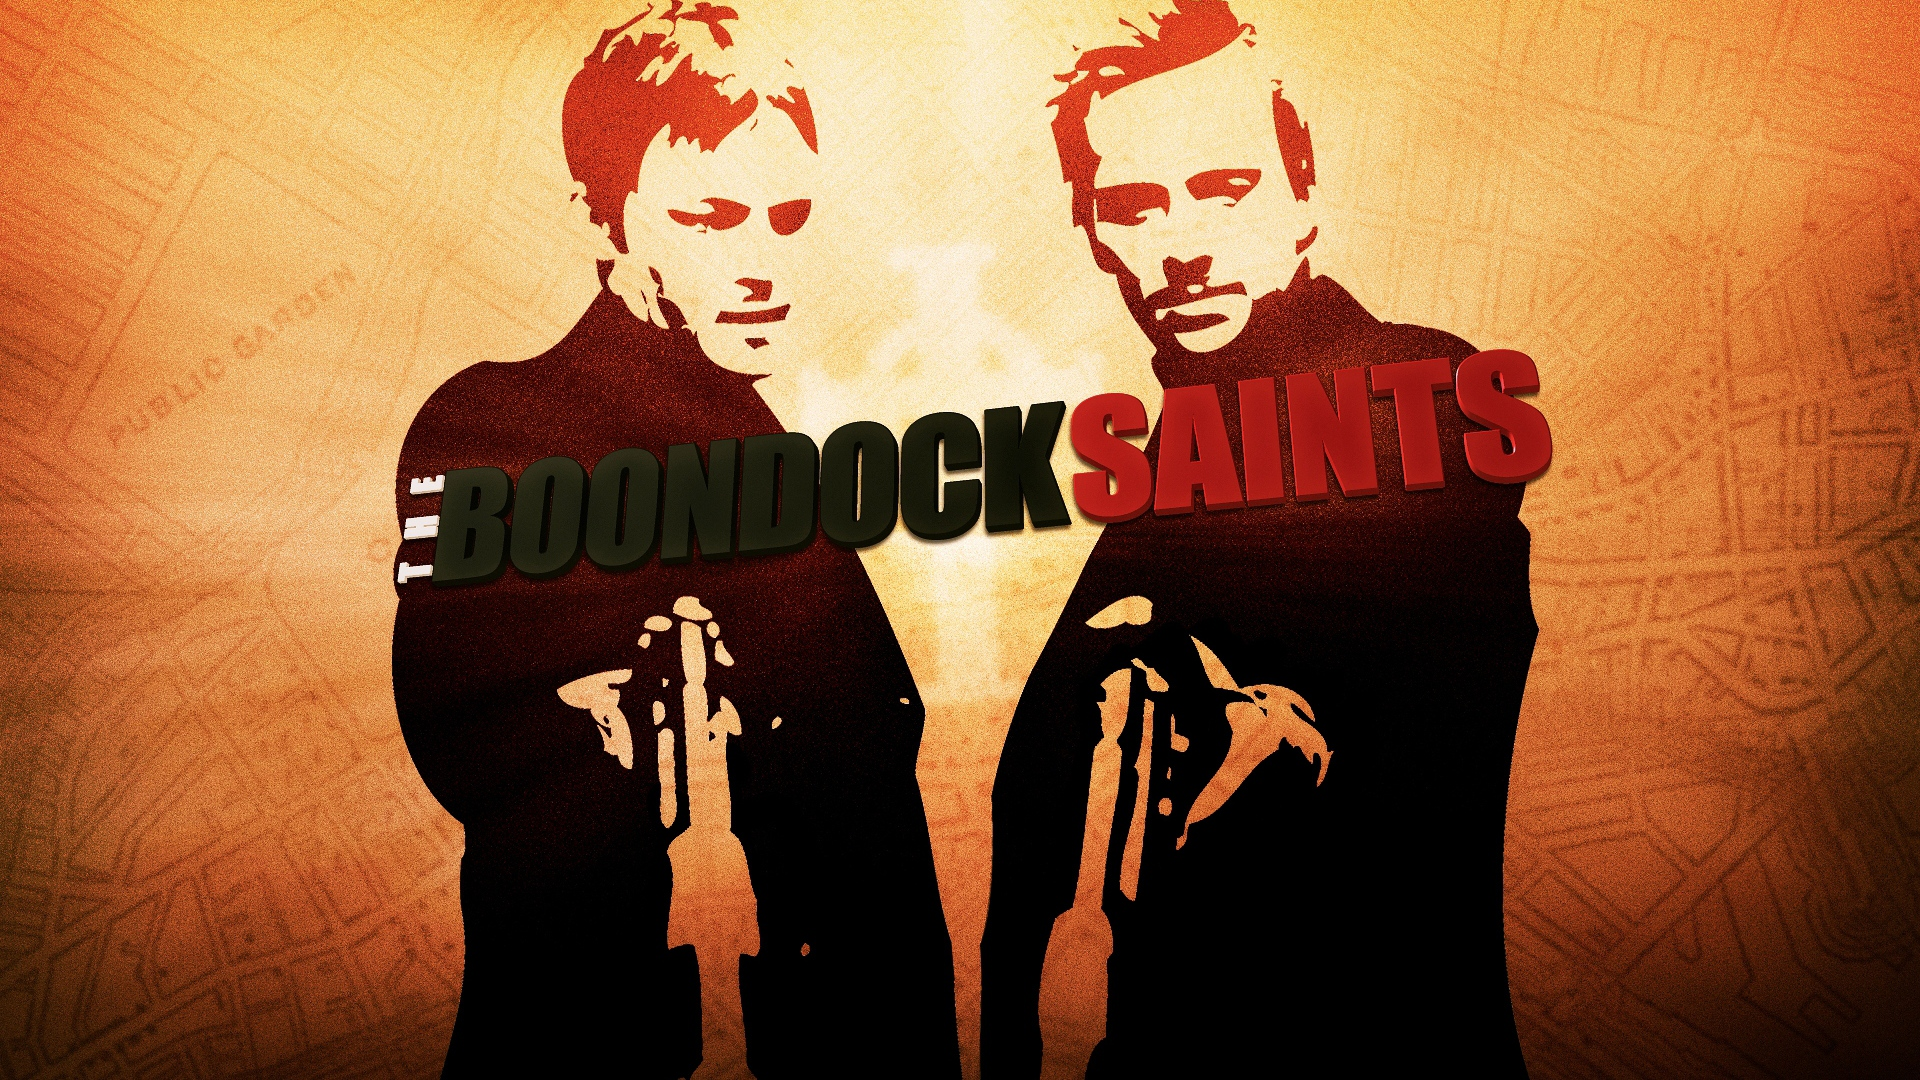 Boondock Saints Killers Pistols